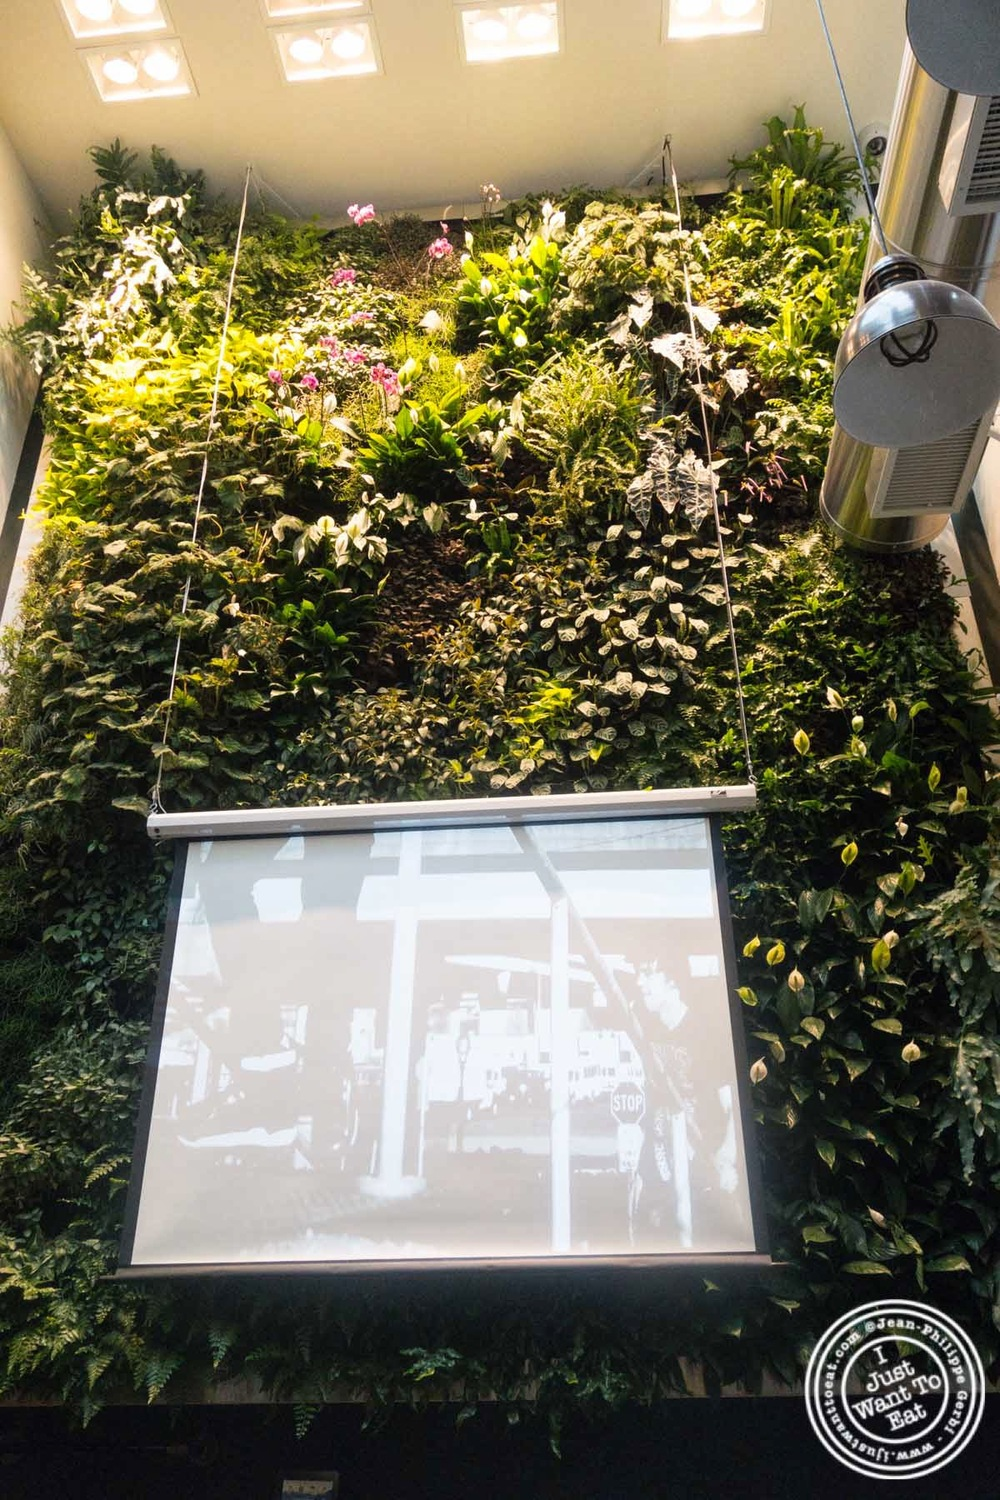 image of suspended garden at Hogar Dulce Hogar, a Basque Bakery in Soho